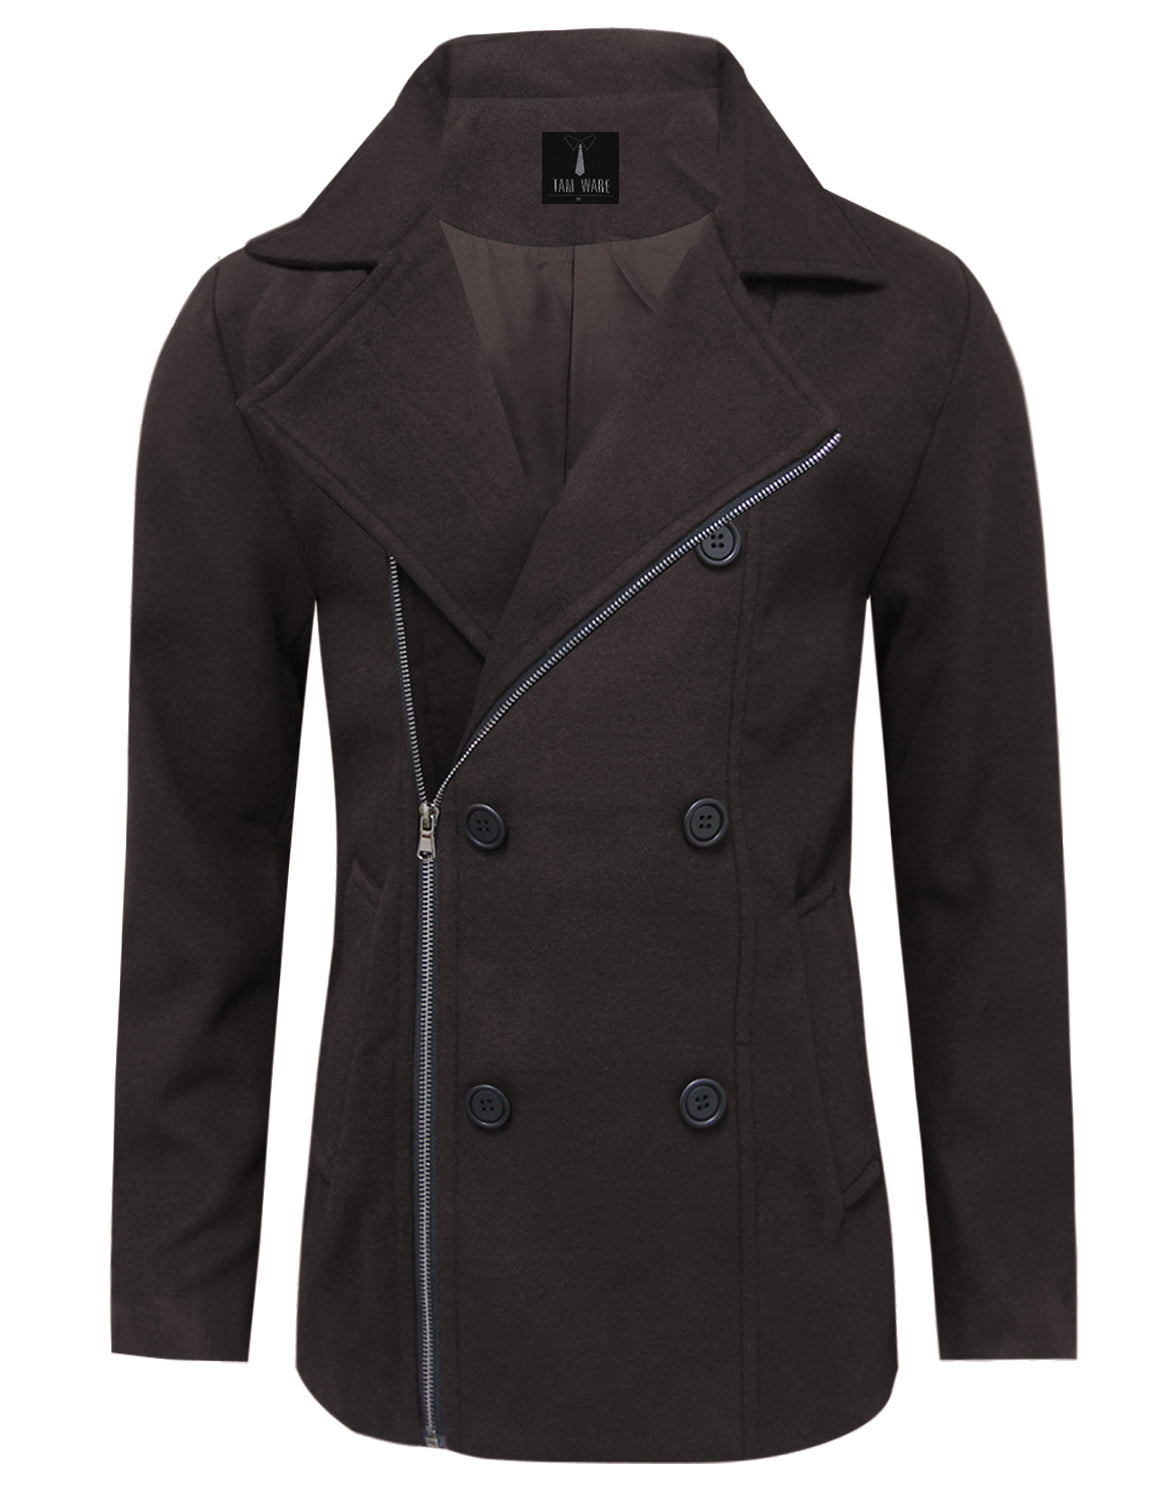 4c861250 TAM WARE Men's Stylish Zip Up Wool Double Breasted Pea Coat